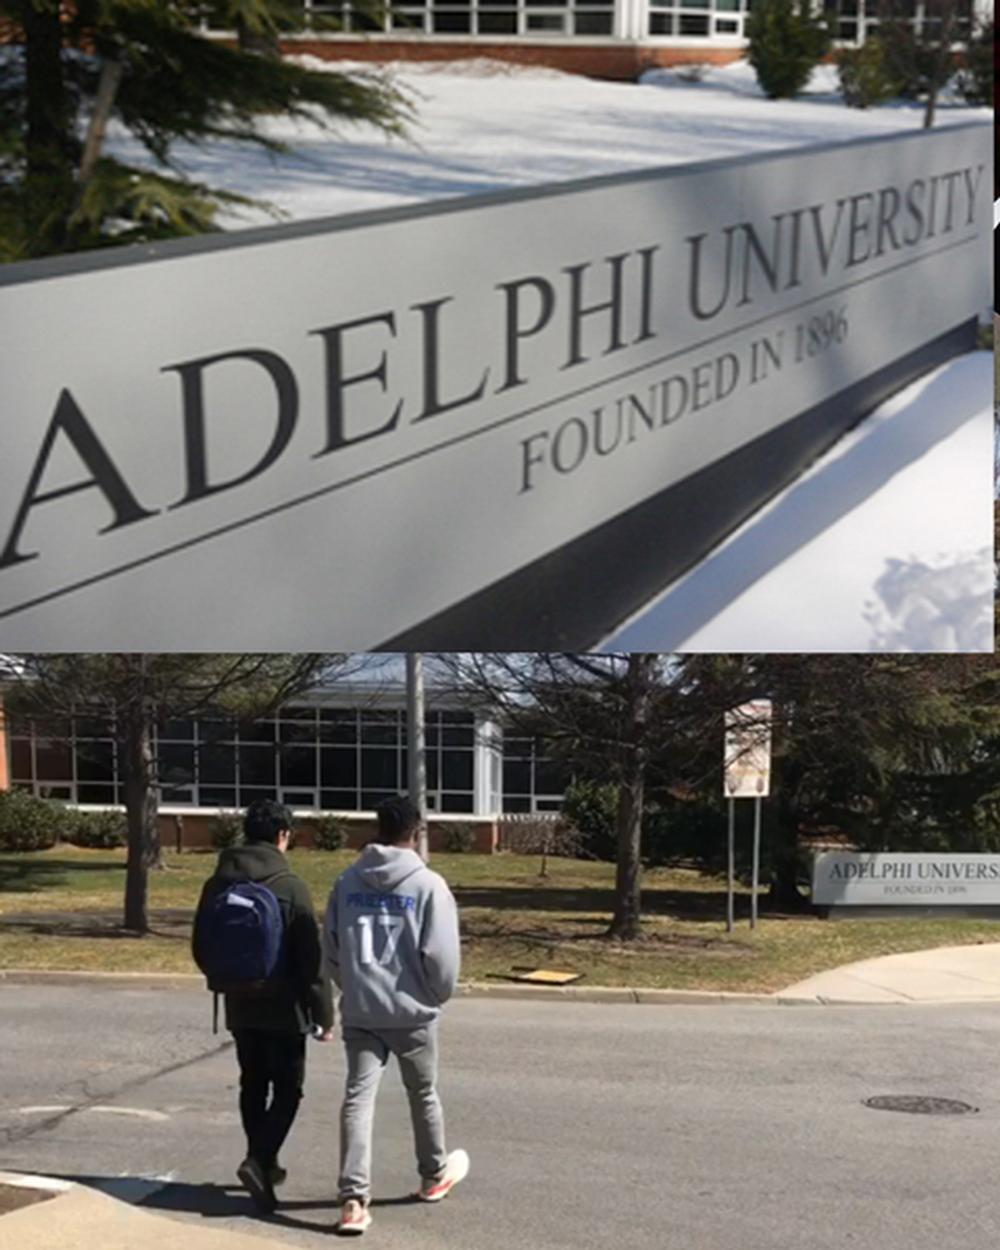 Adelphi Partnership Program